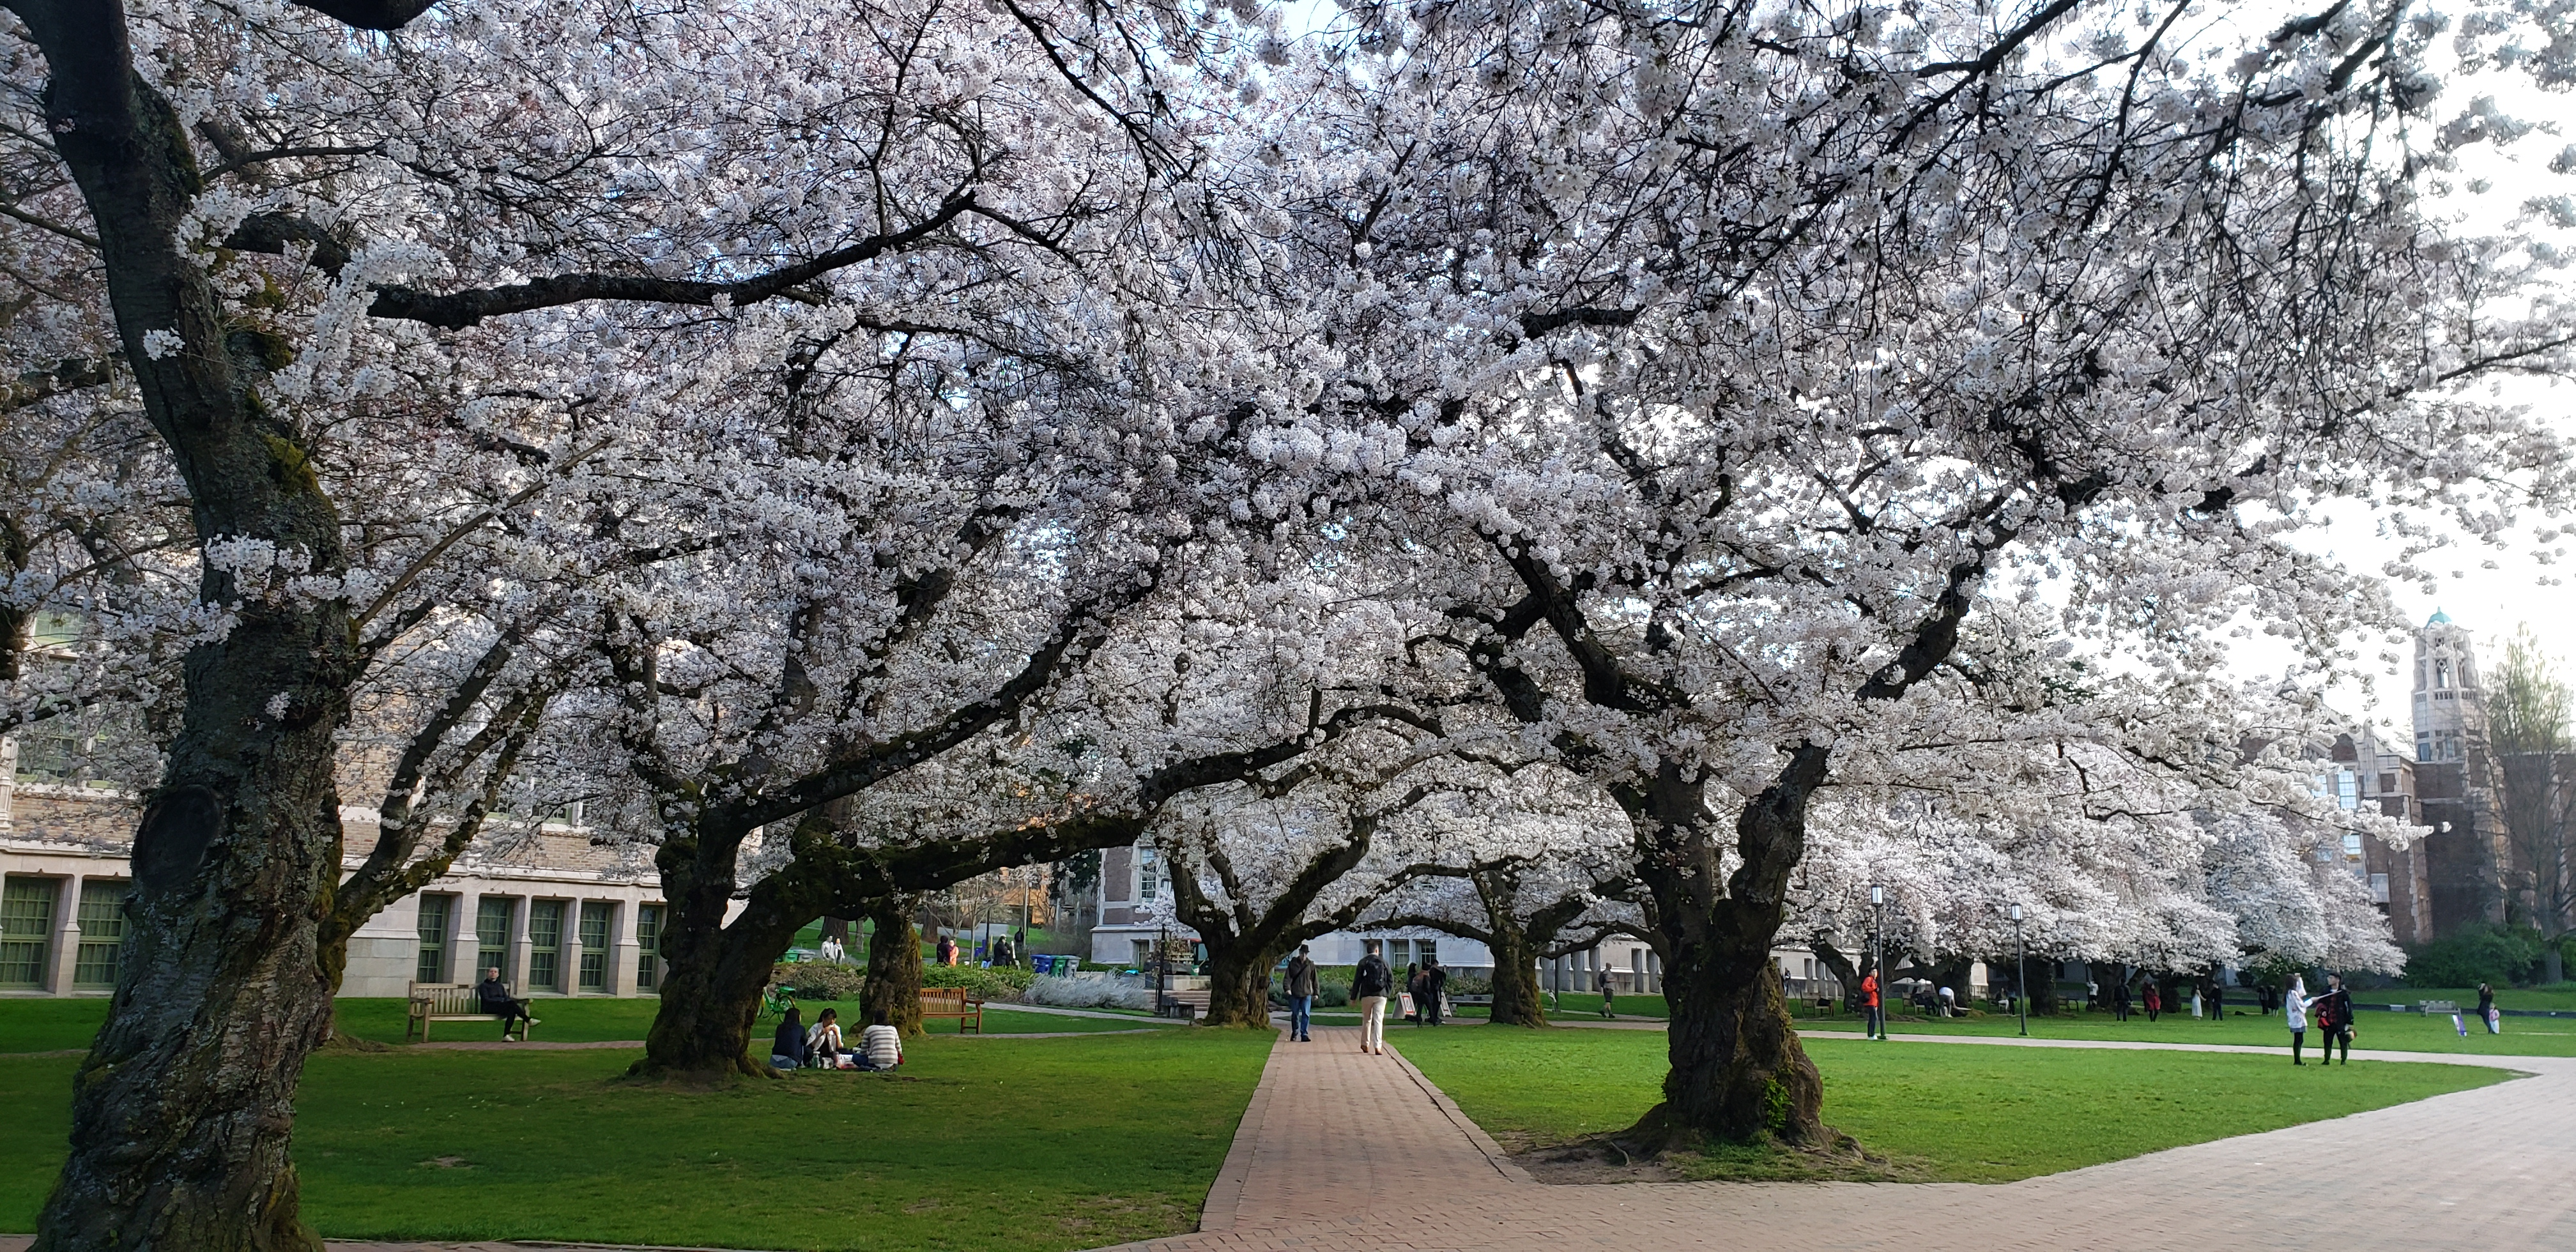 Quad Cherry Blossoms Expected To Peak End Of March If Weather